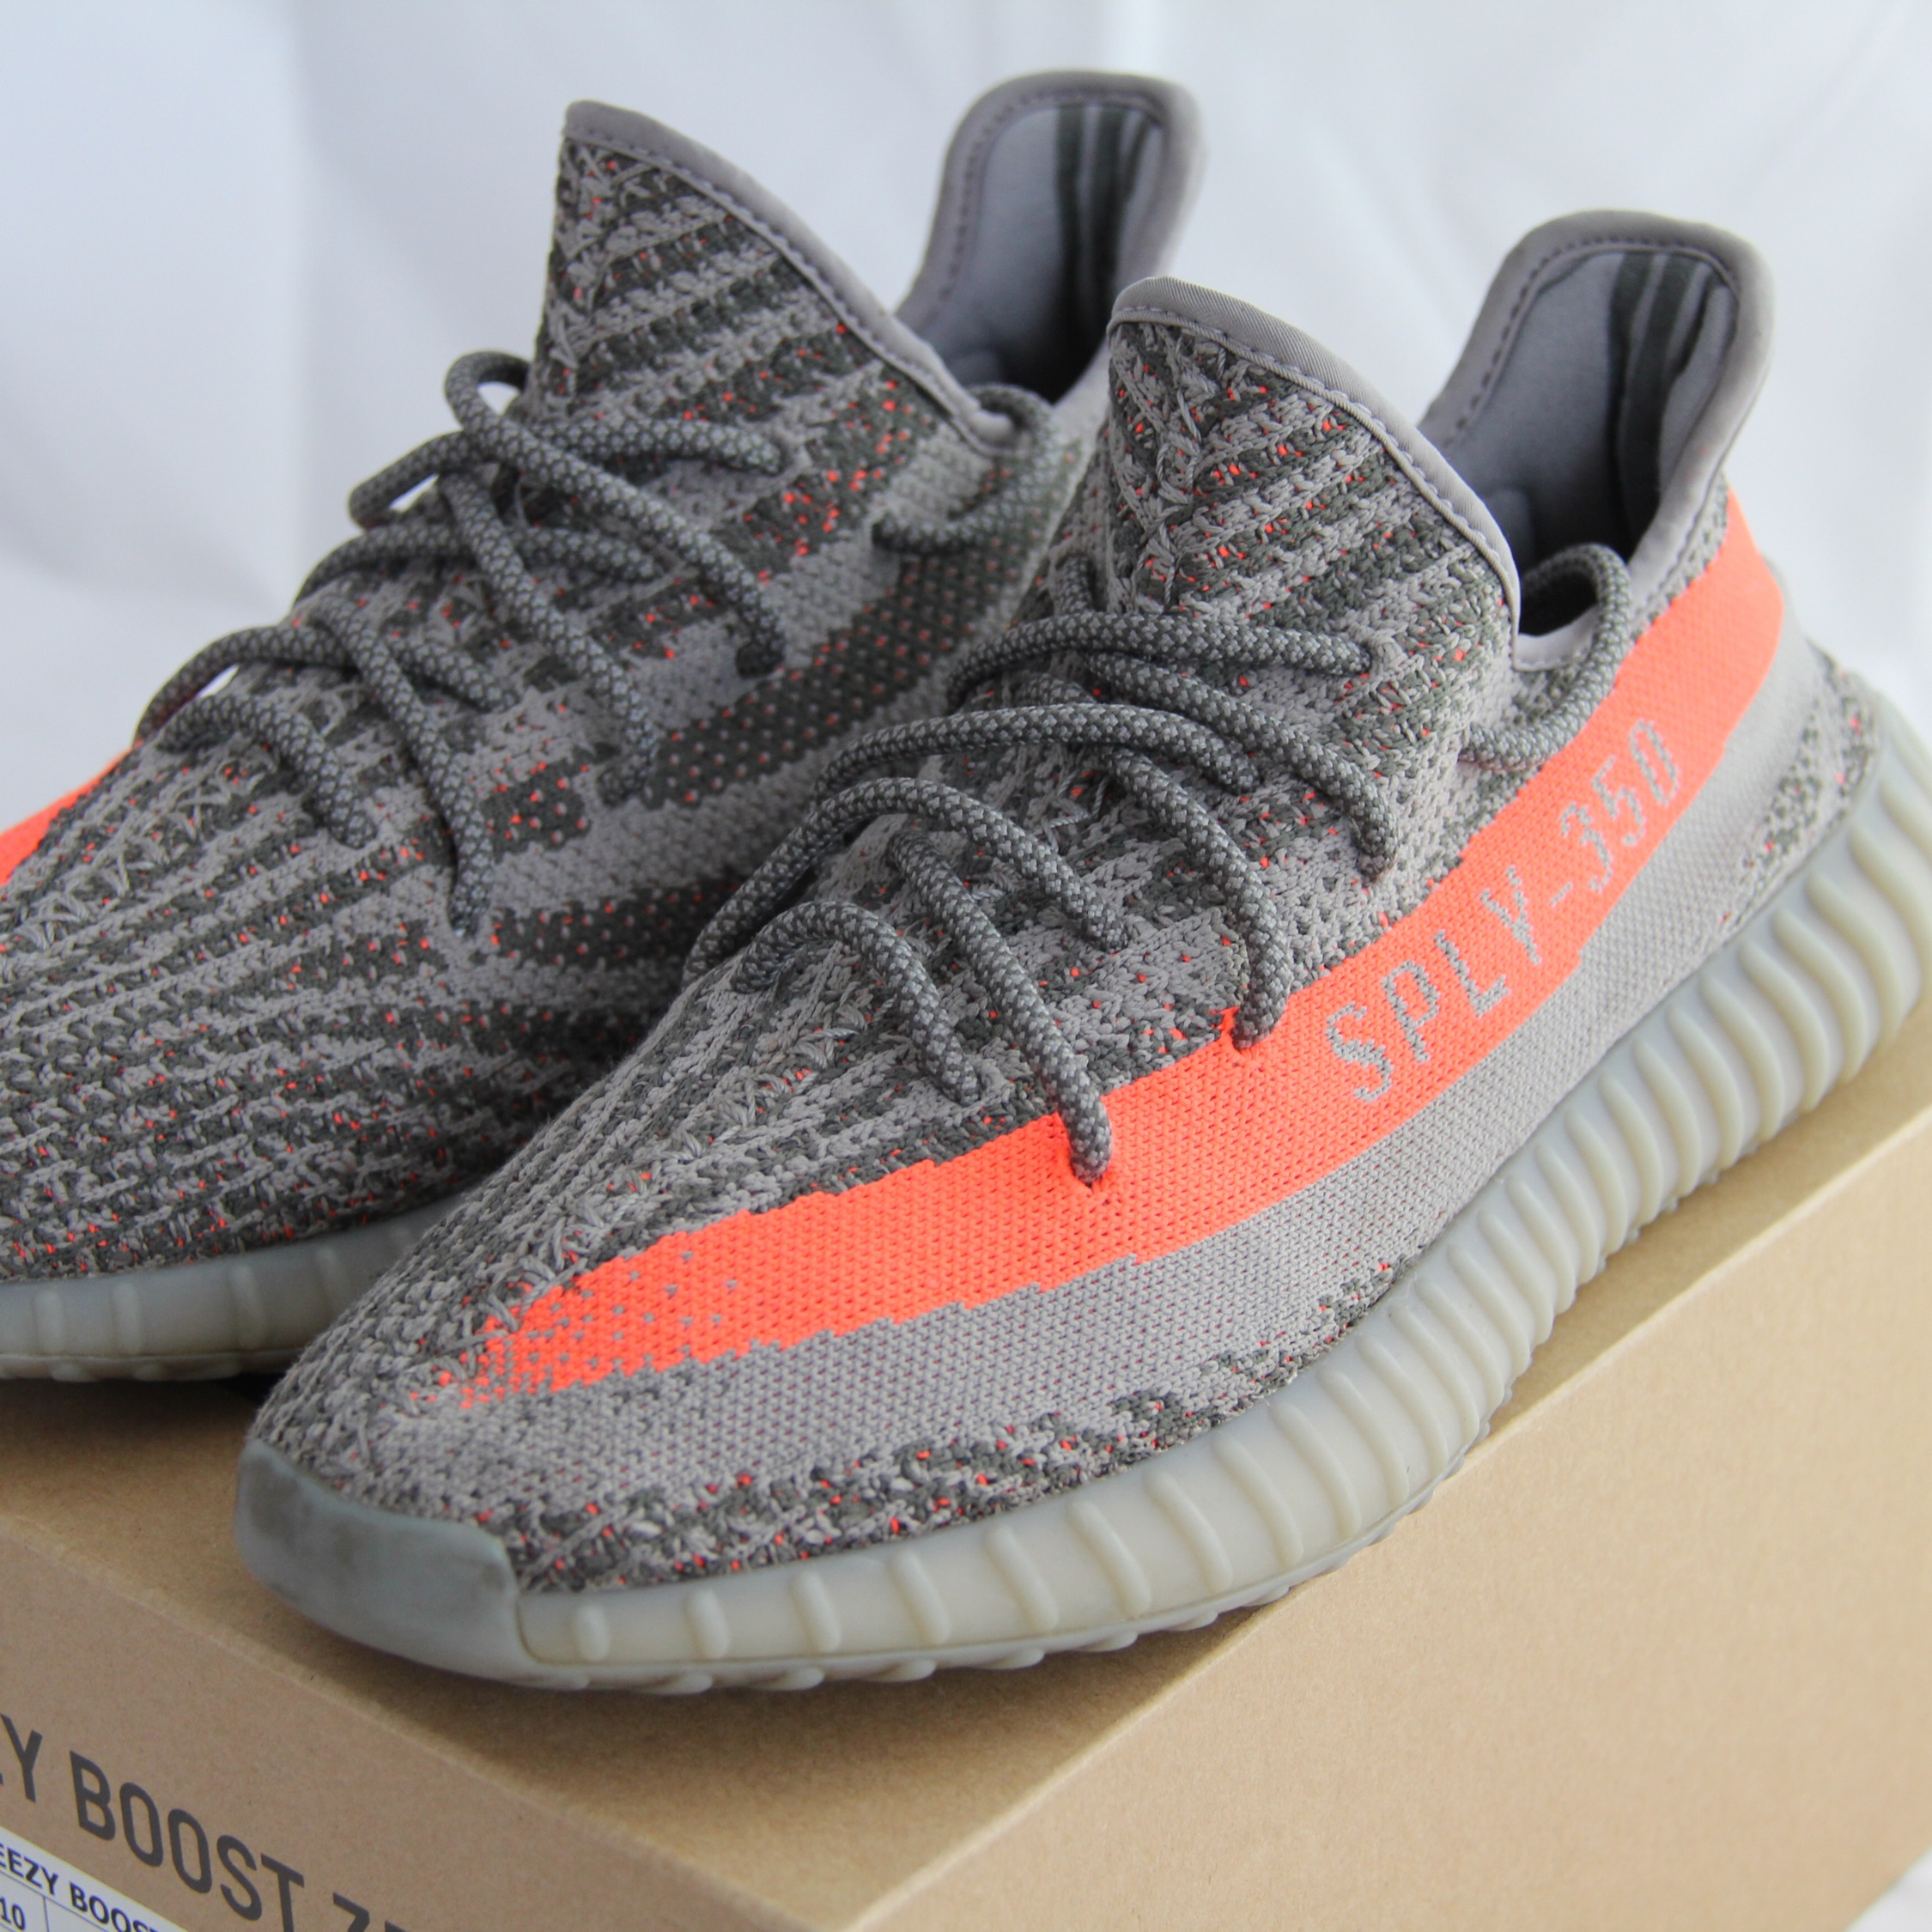 yeezy 350 beluga real vs fake